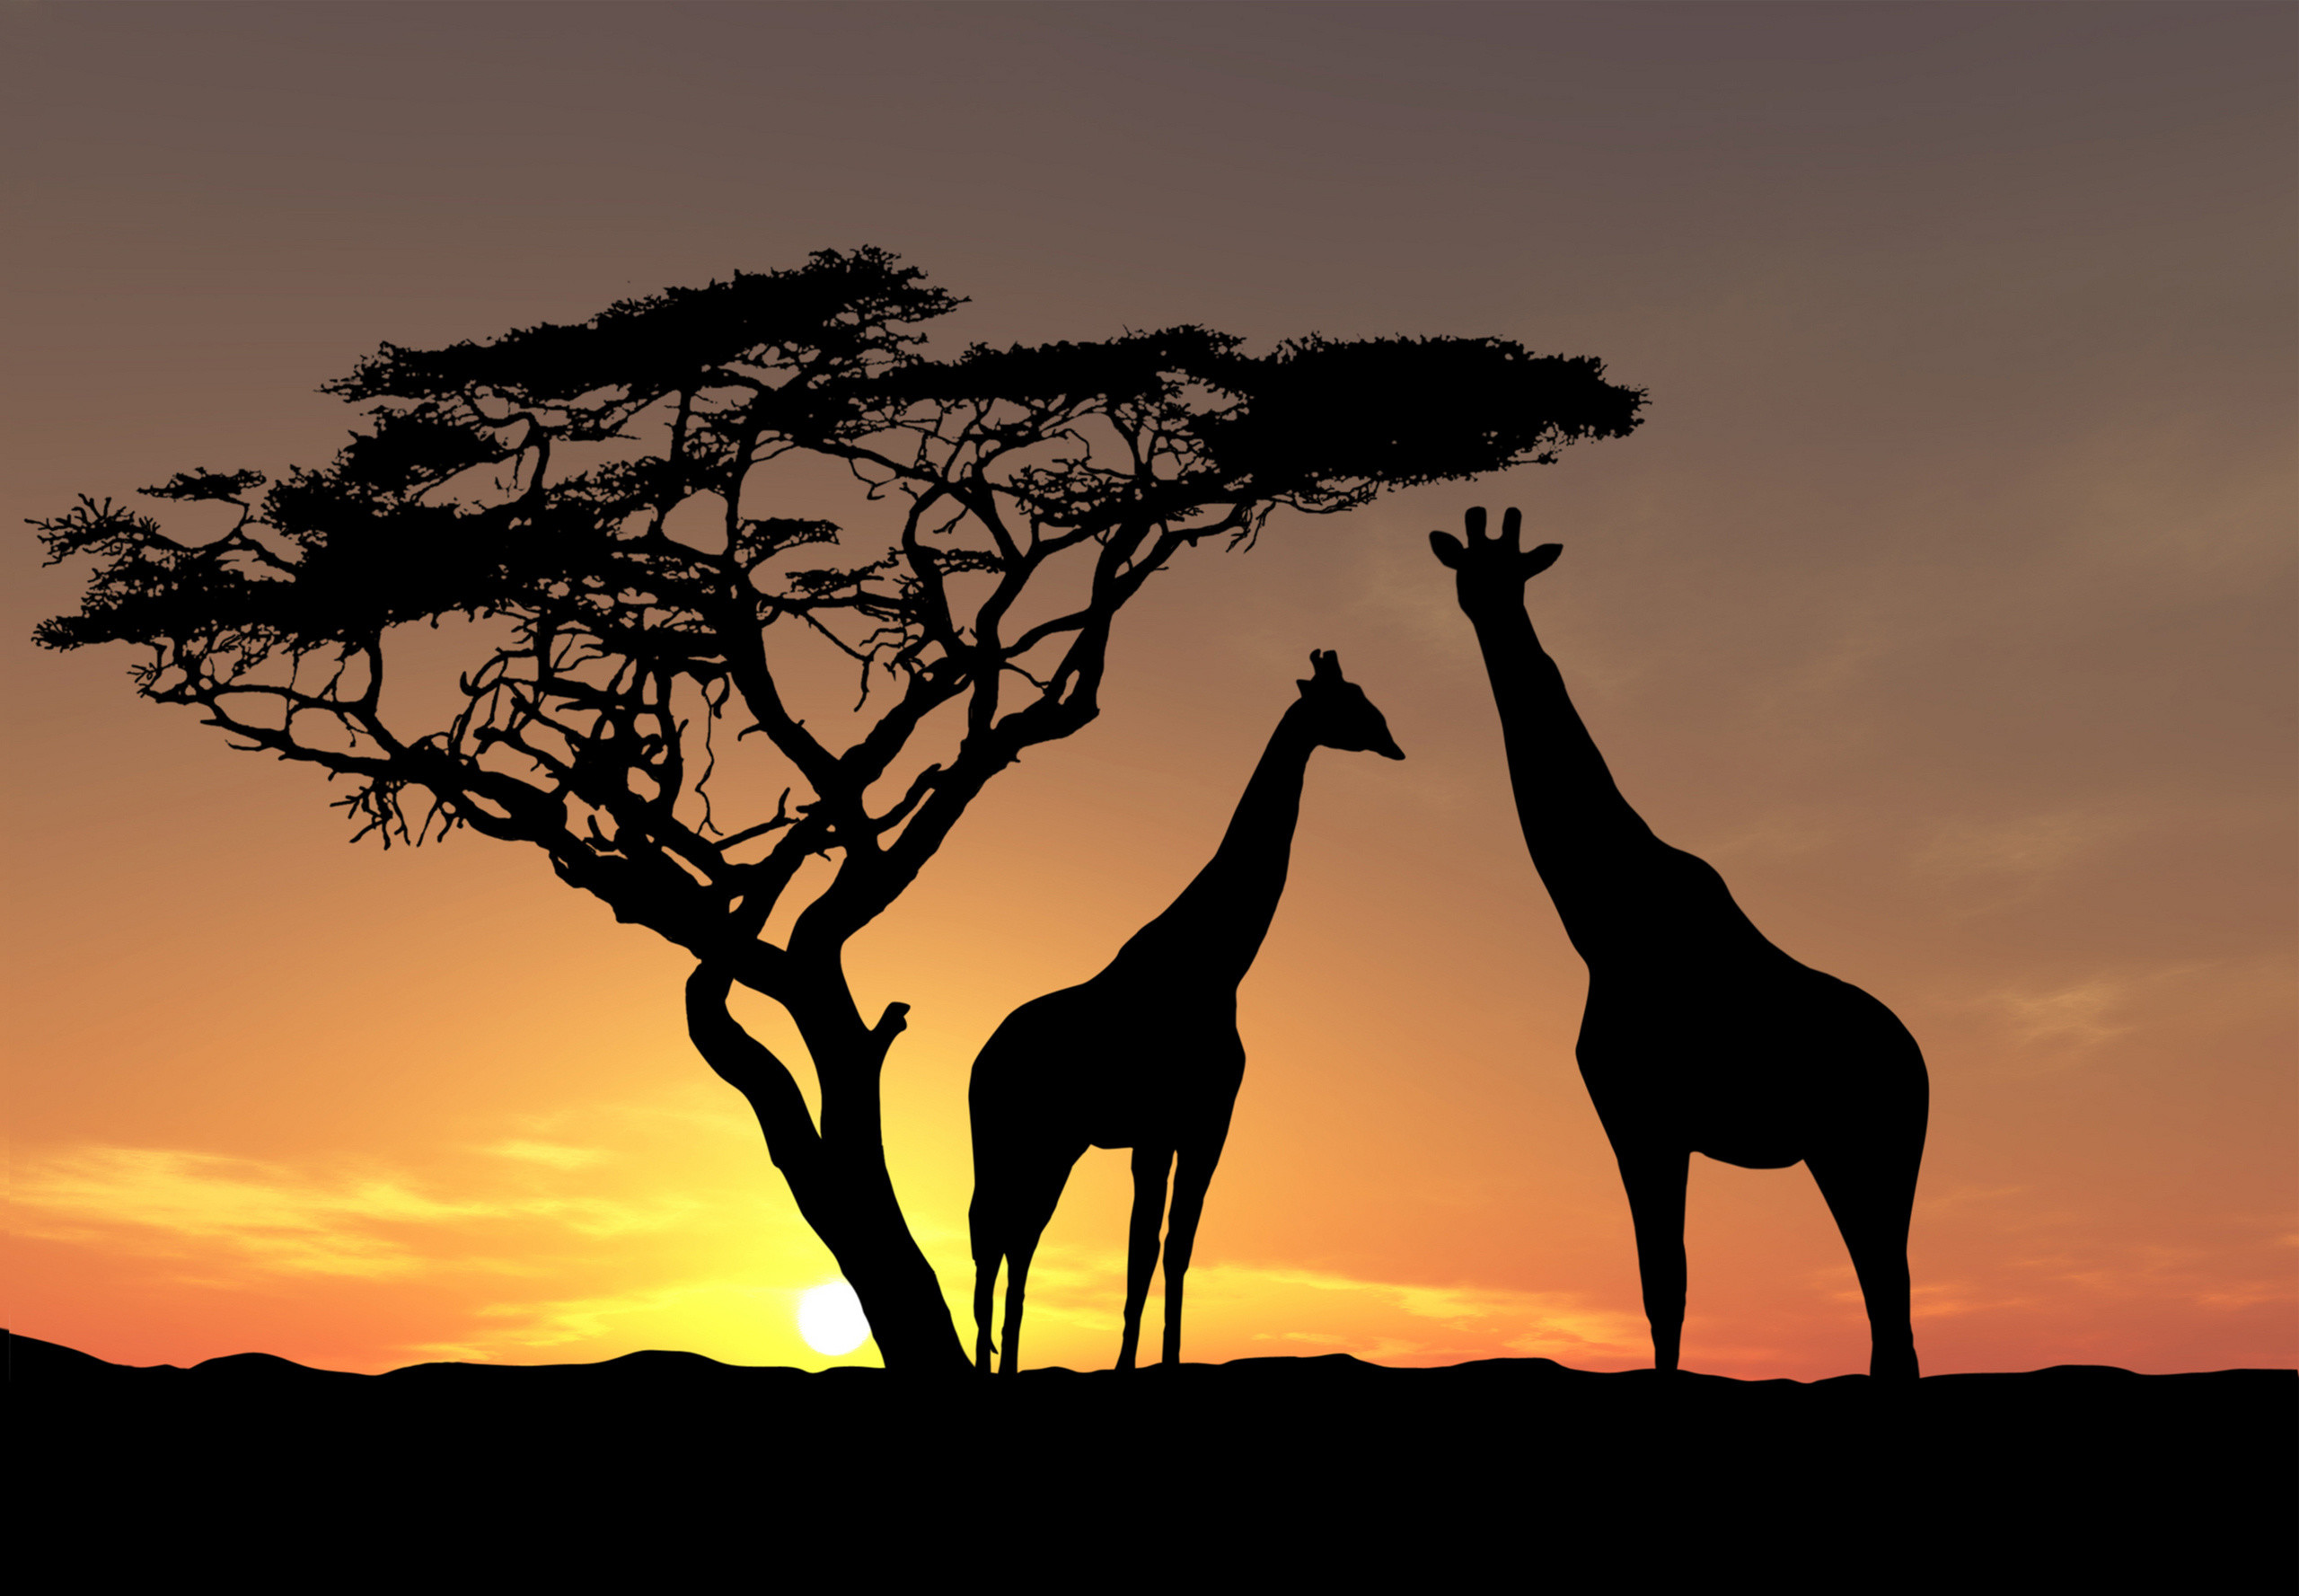 2560x1777 giraffe sunset giraffe sunset giraffe sunset giraffe sunset giraffe sunset  wallpaper ...